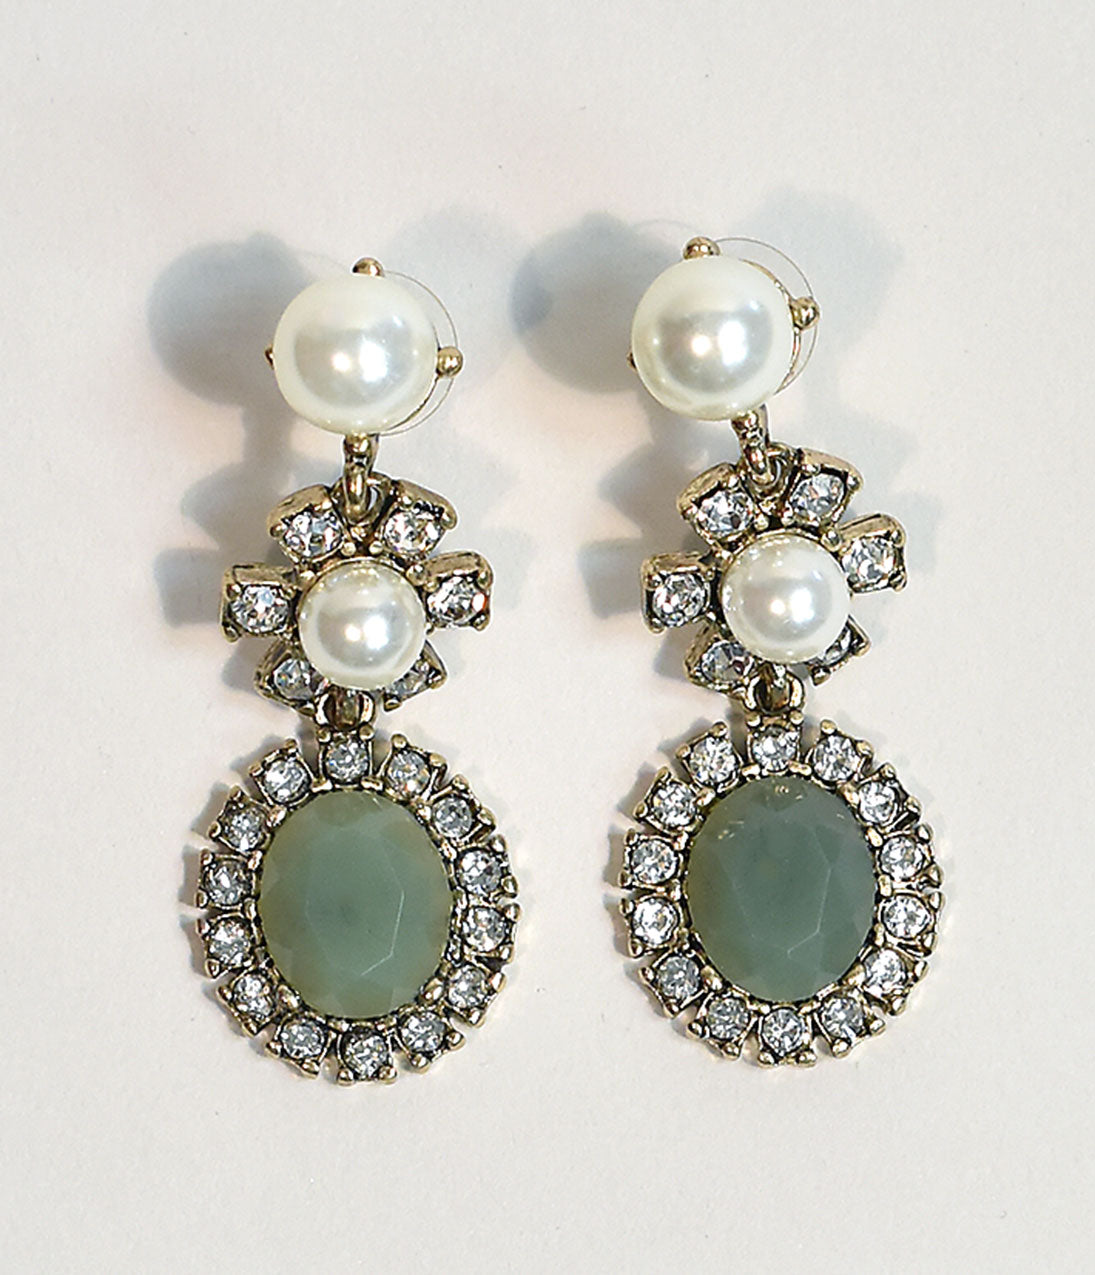 50s Jewelry: Earrings, Necklace, Brooch, Bracelet Pale Green Gem  Ivory Pearls Drop Earrings $22.00 AT vintagedancer.com